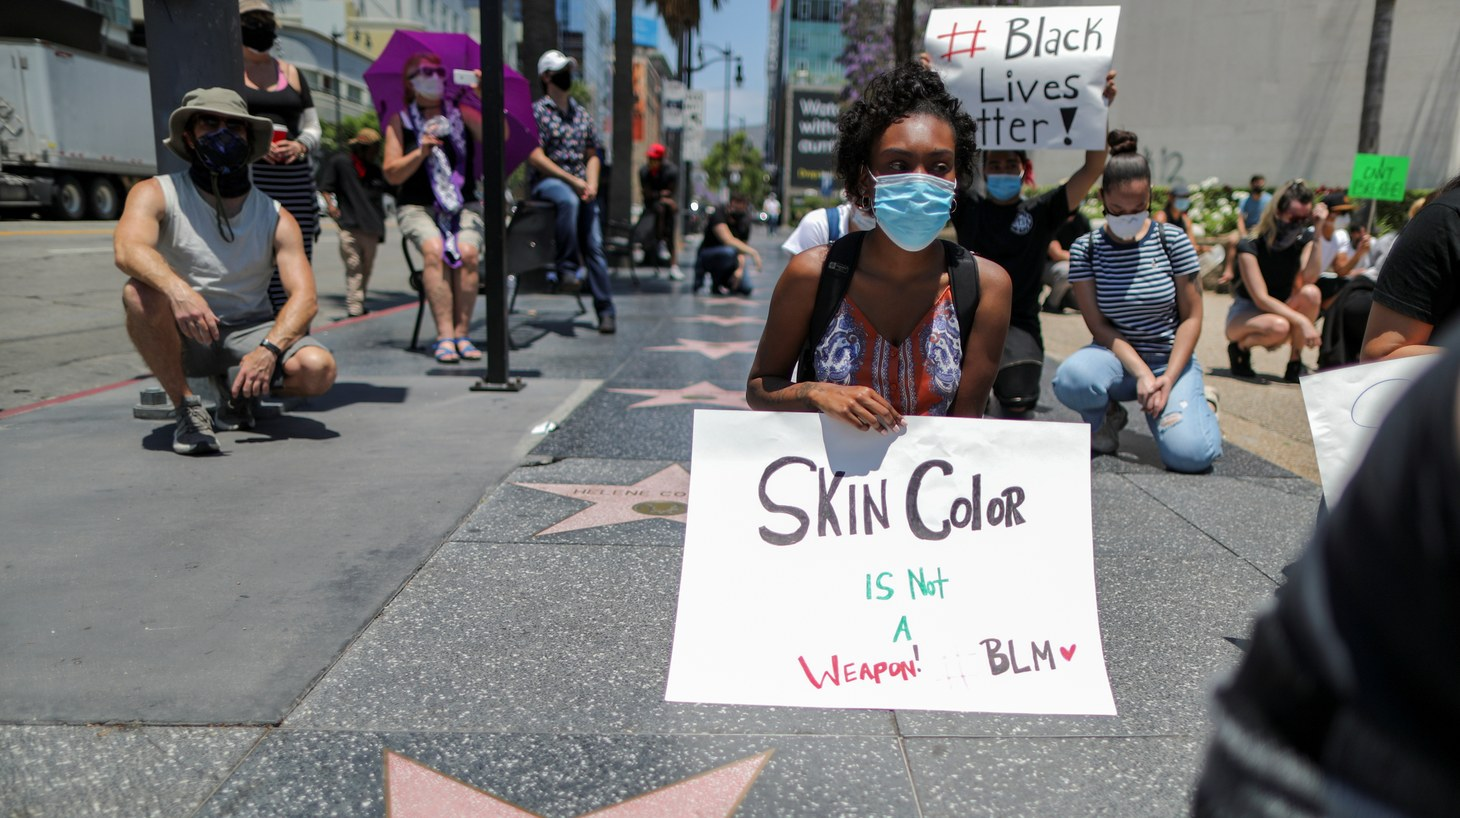 People attend a protest against the death in Minneapolis police custody of George Floyd, at a Hollywood Walk of Fame, Los Angeles, California, U.S. June 3, 2020.